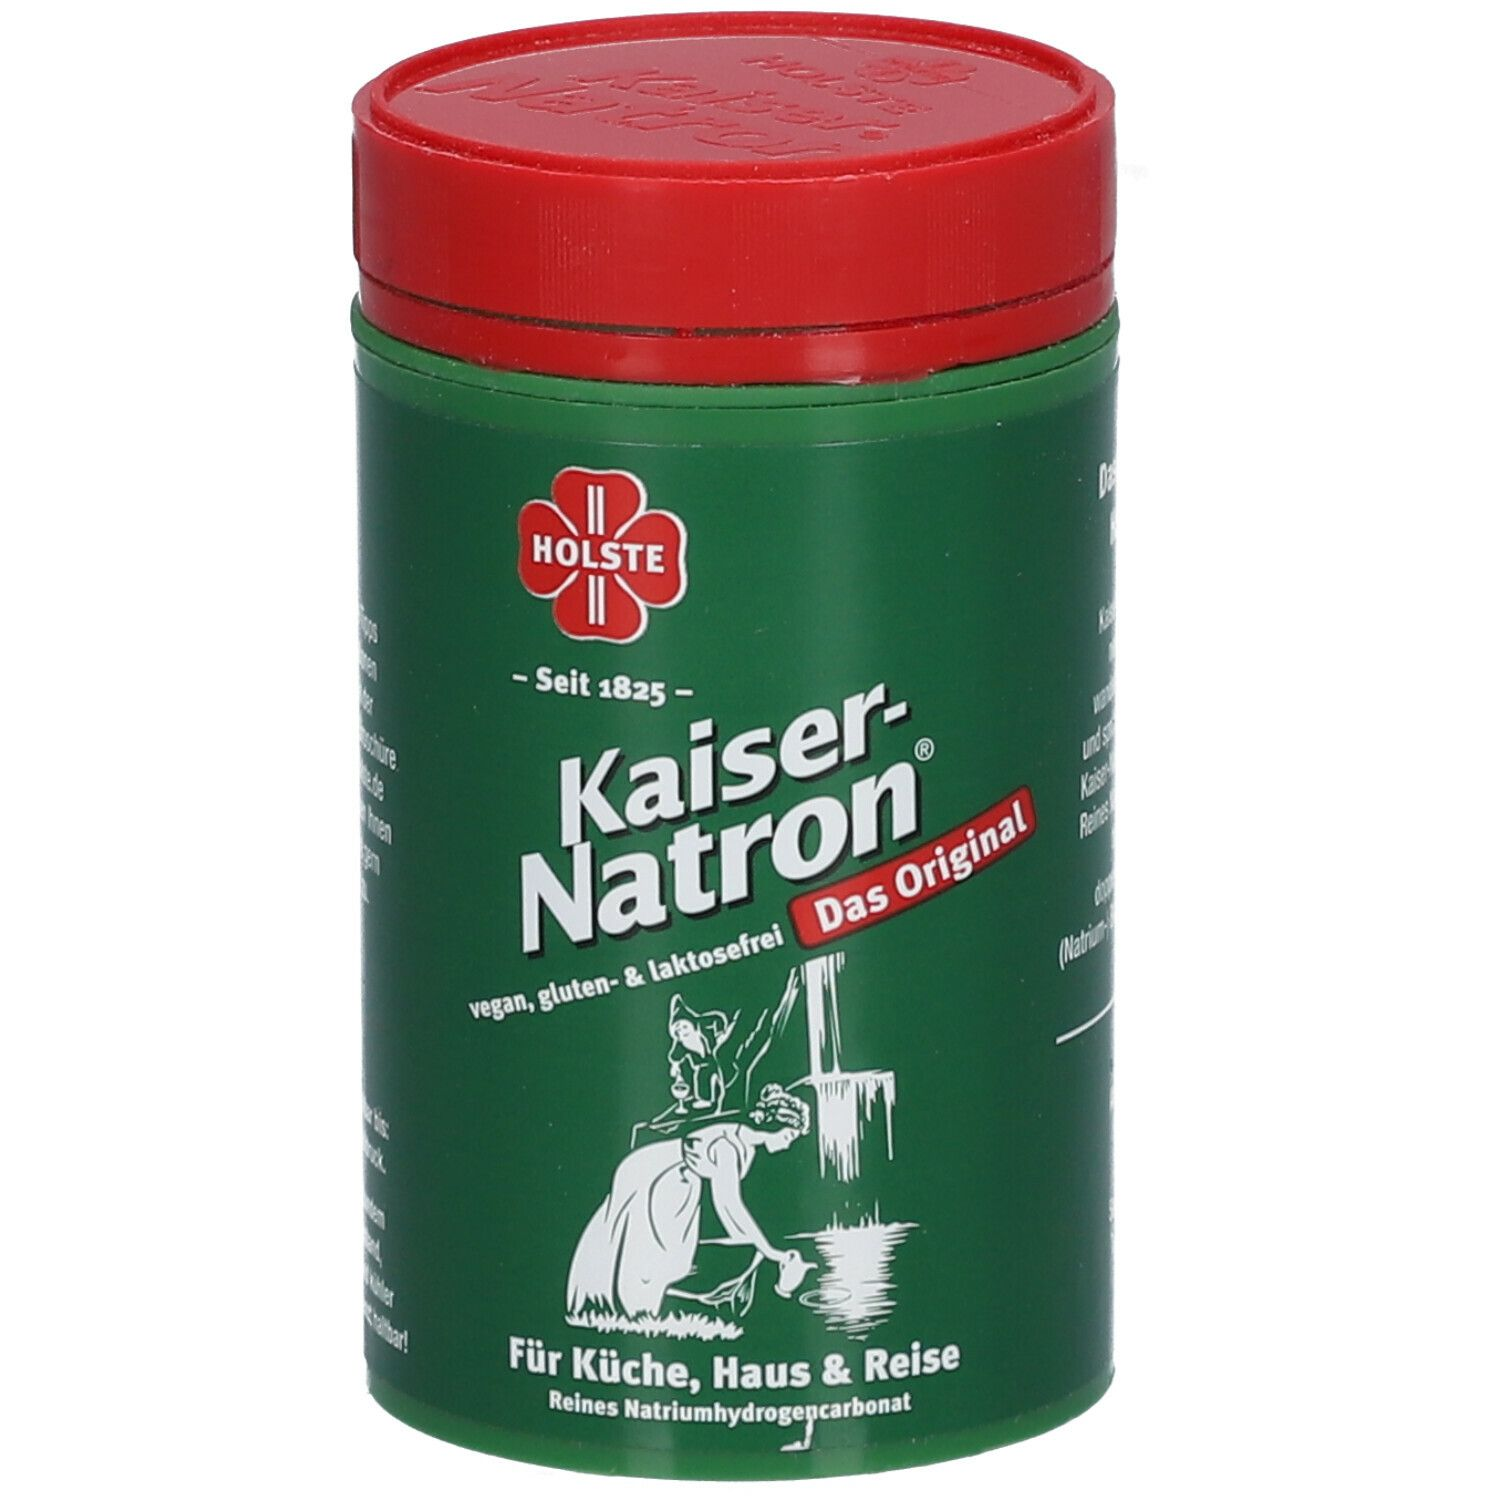 Image of Kaiser-Natron Tabletten